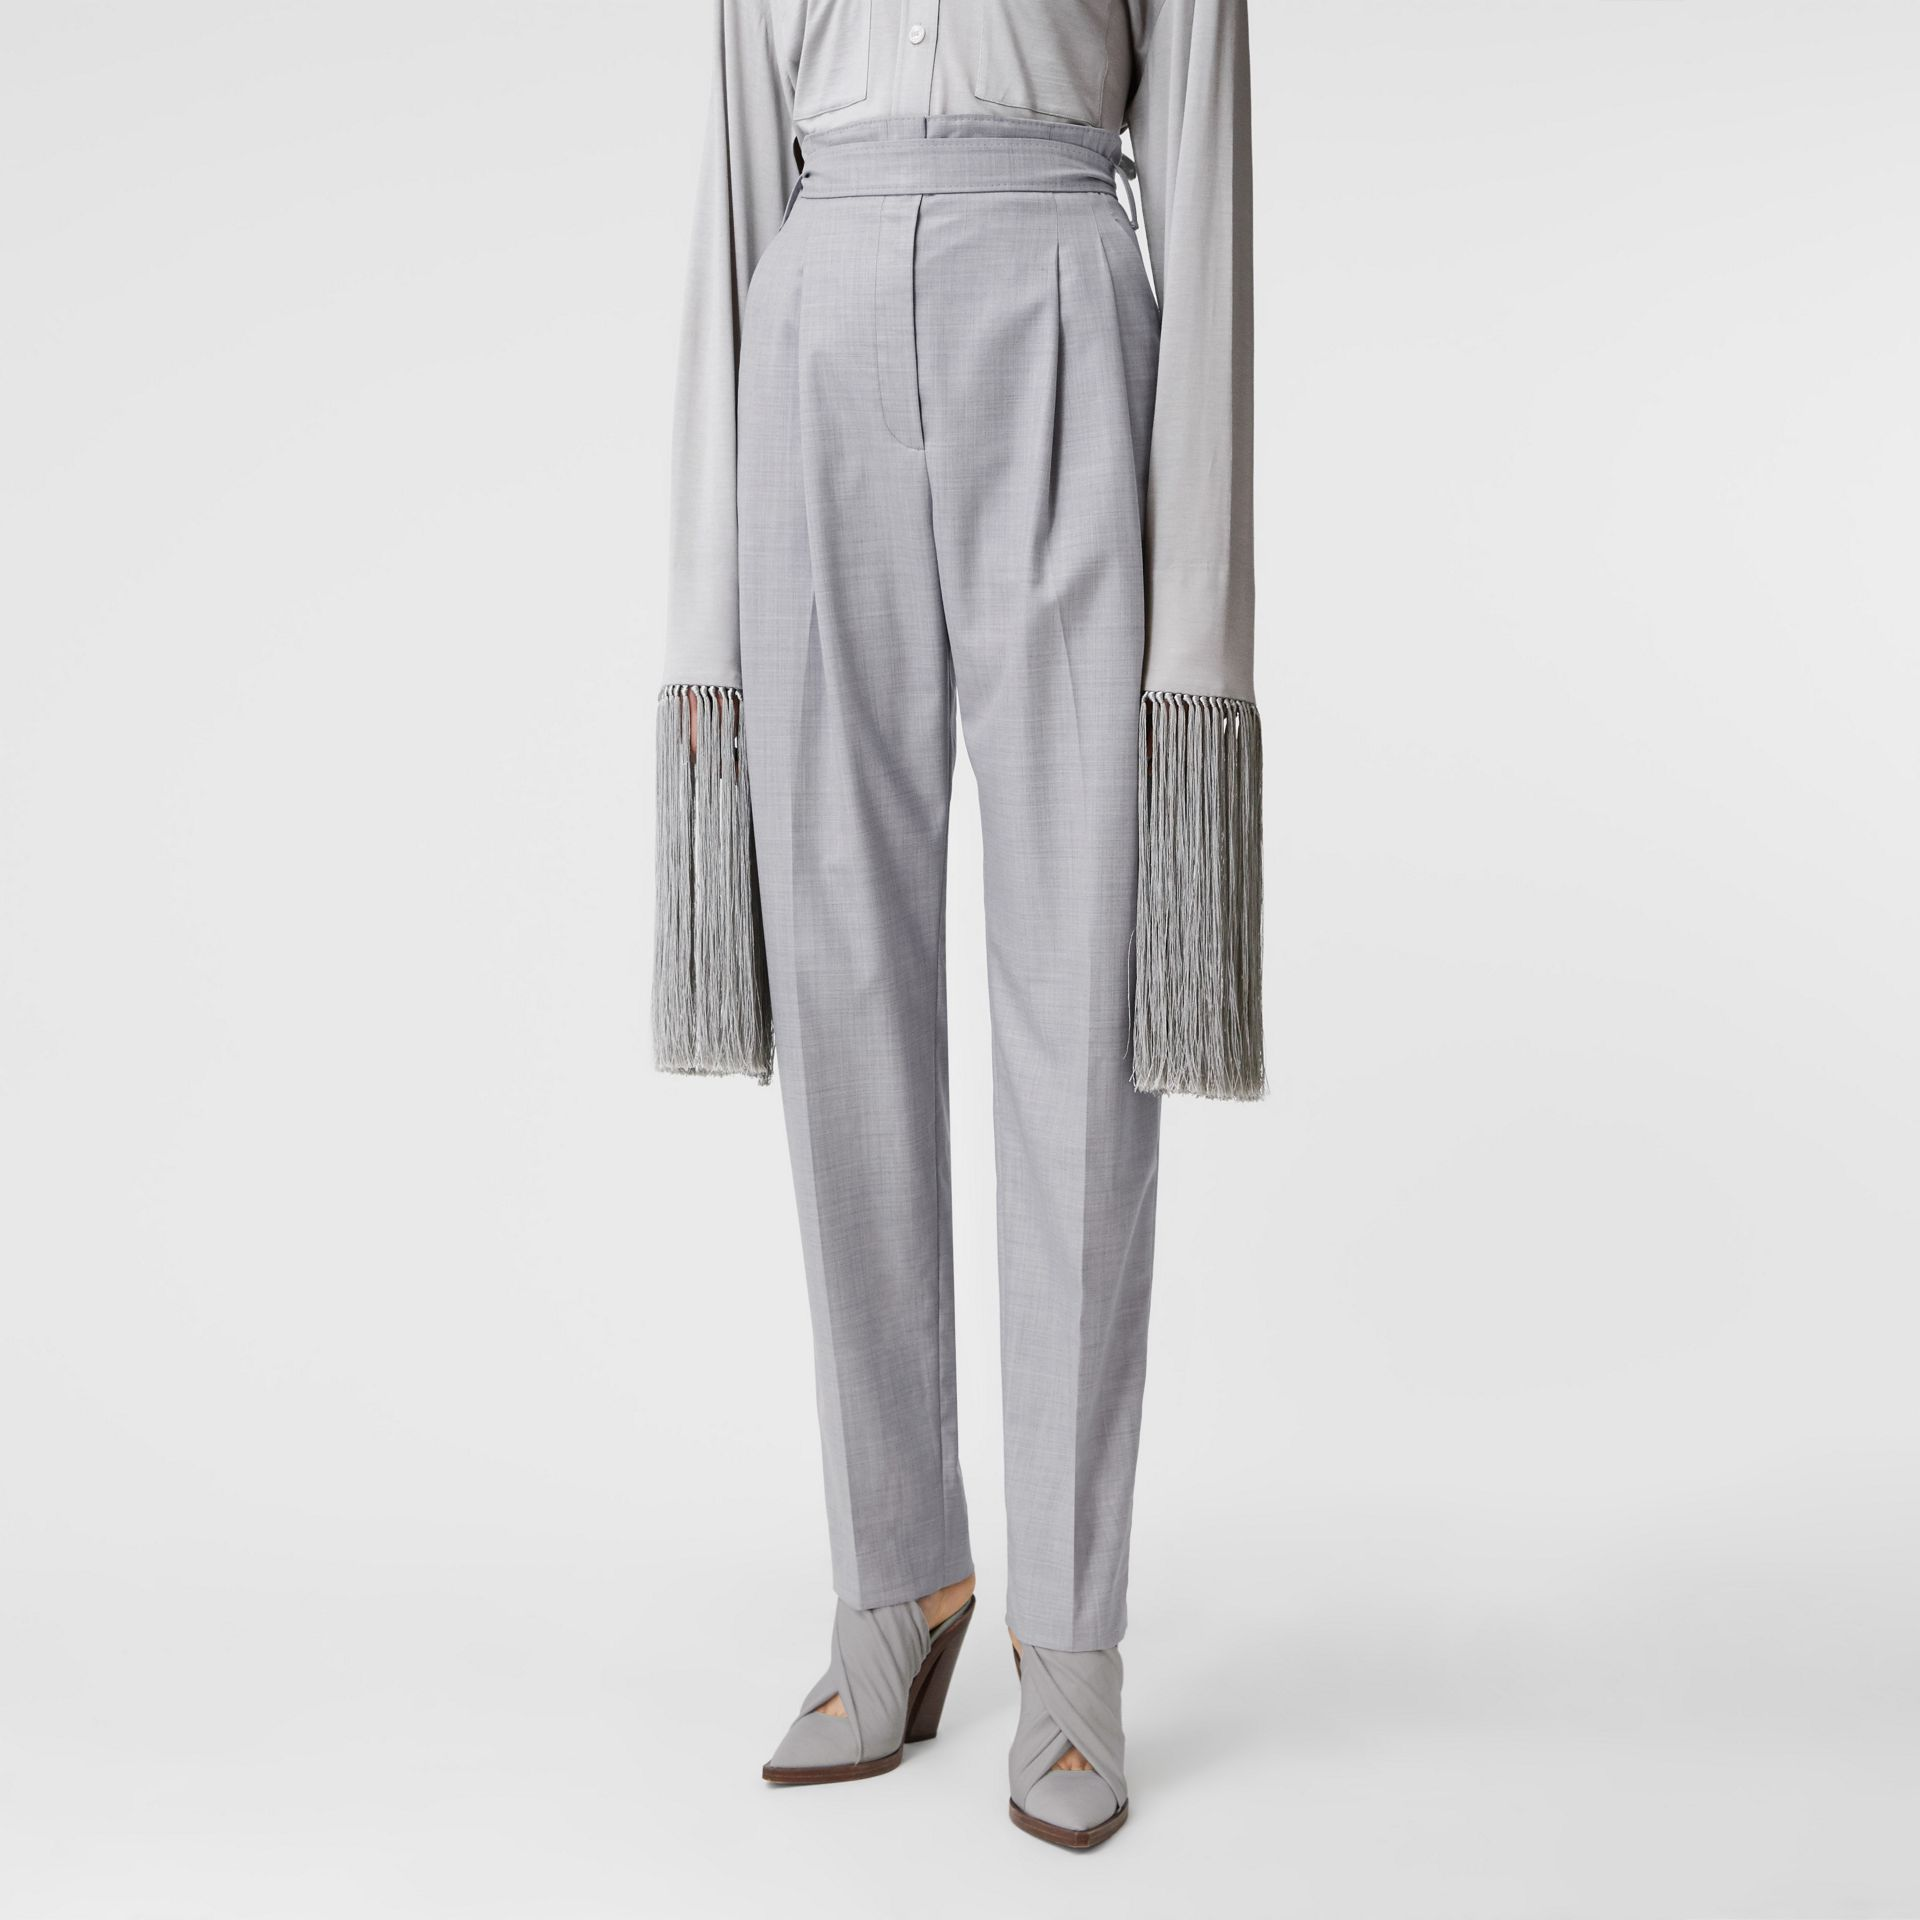 Cut-out Detail Wool Jersey Tailored Trousers in Cloud Grey - Women | Burberry Canada - gallery image 5